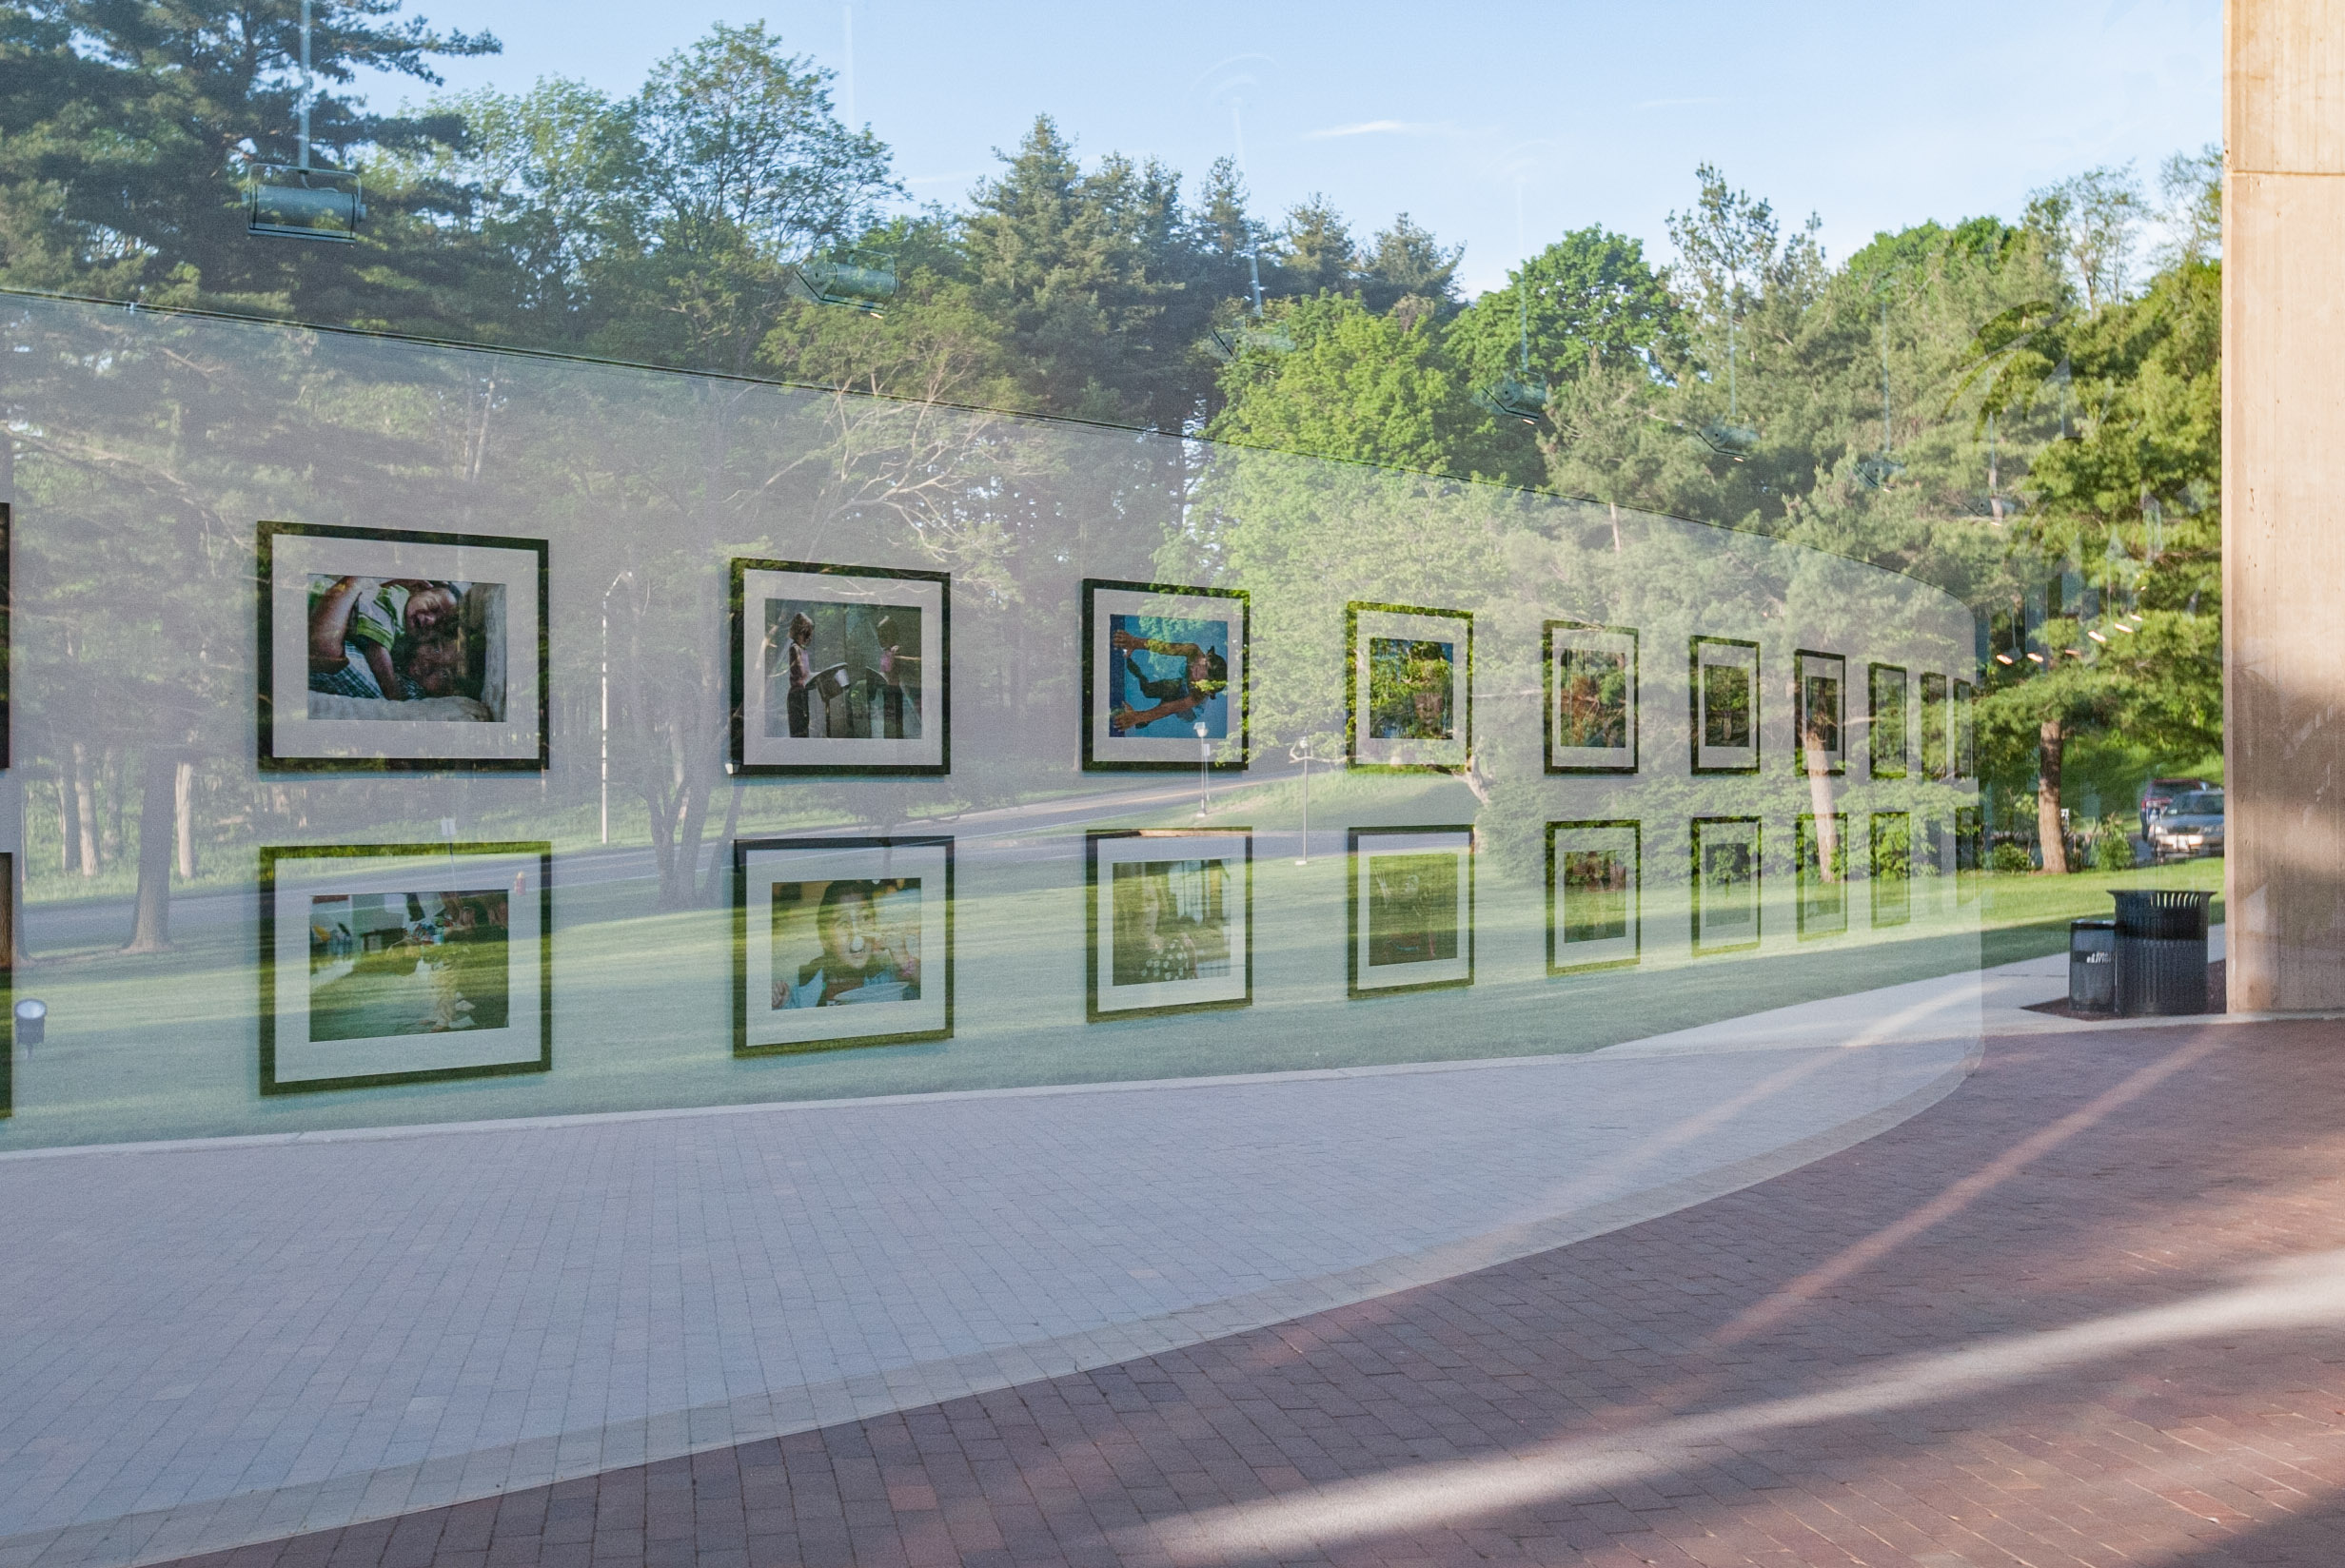 1 Earth City exhibit by Danny Goldfield at IM Pei designed Paul Mellon Arts Center on the Choate Rosemary Hall campus in Wallingford CT.